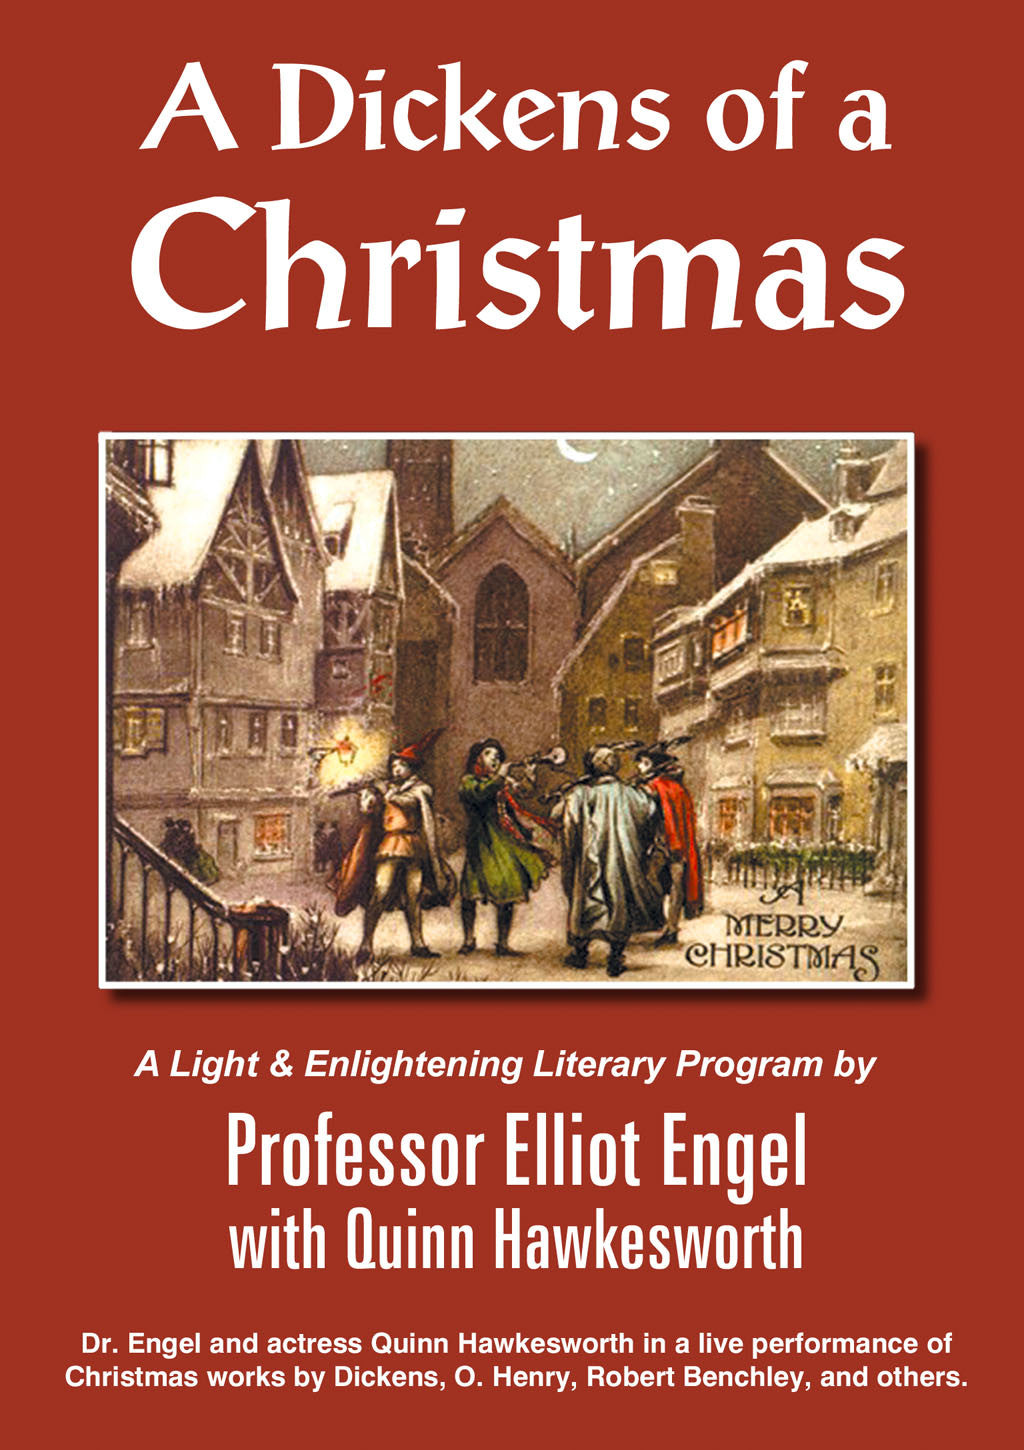 DL04 A Dickens Of A Christmas - AUDIO DOWNLOAD